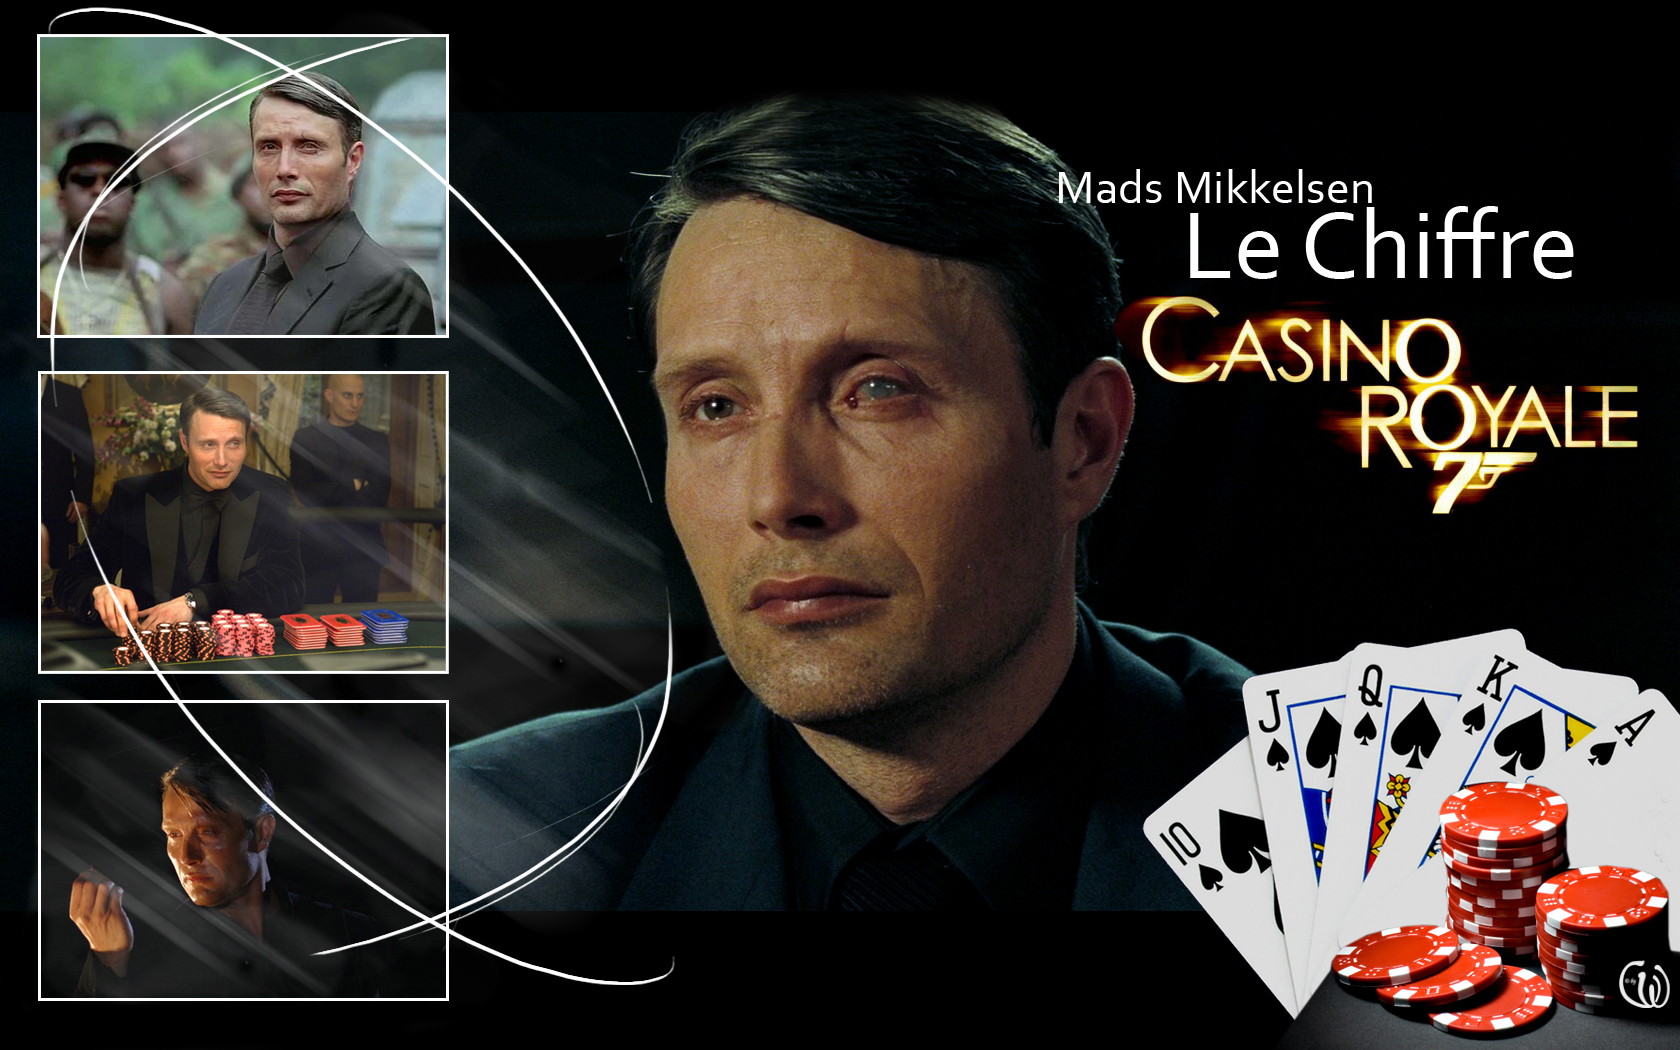 james bond casino royale mads mikkelsen